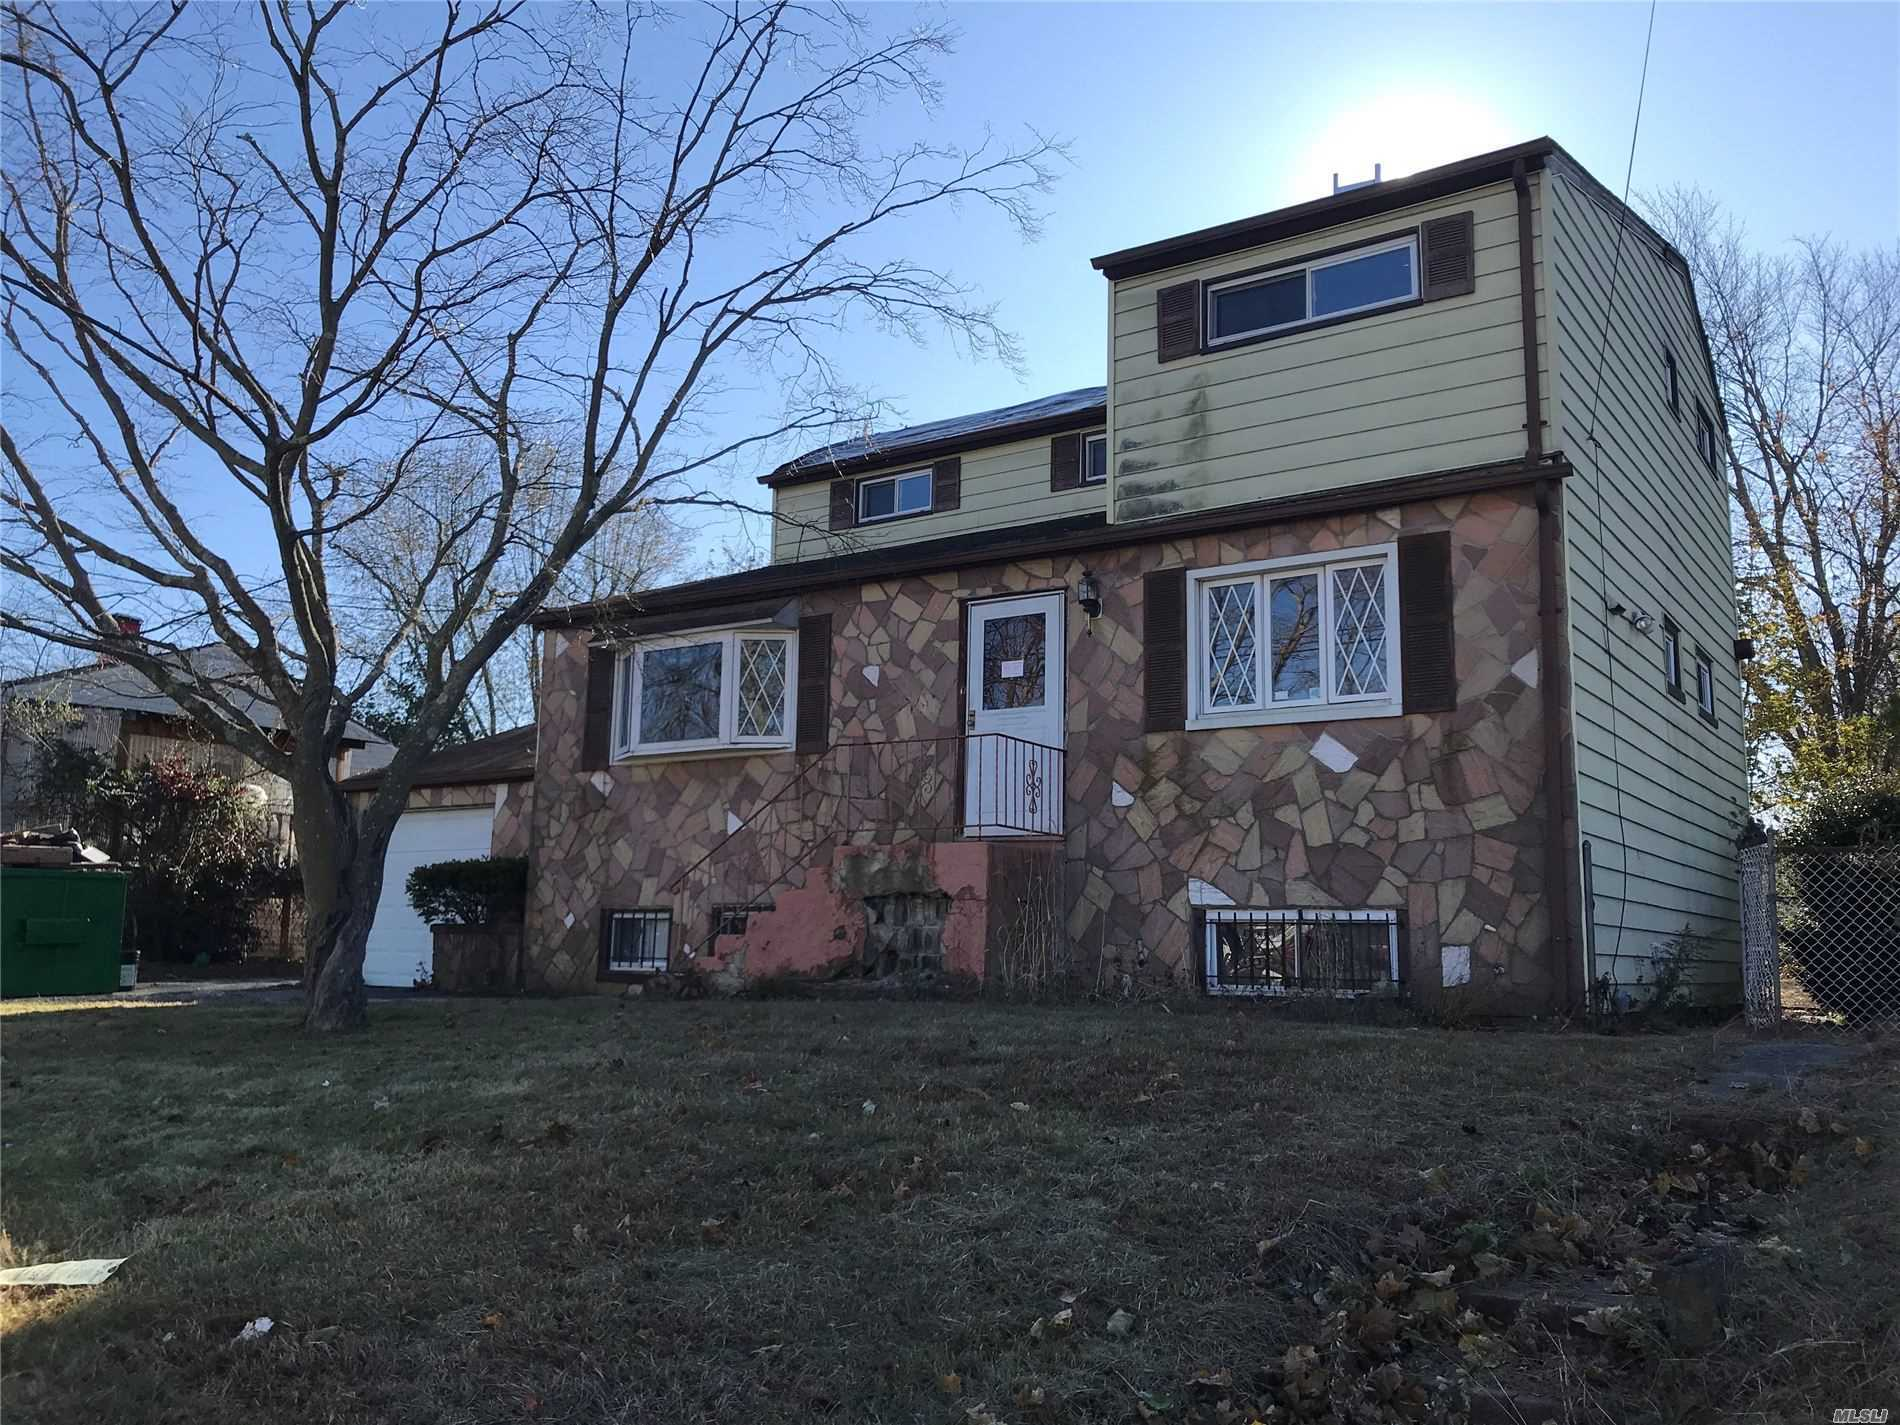 34 Rosewood St - Central Islip, New York